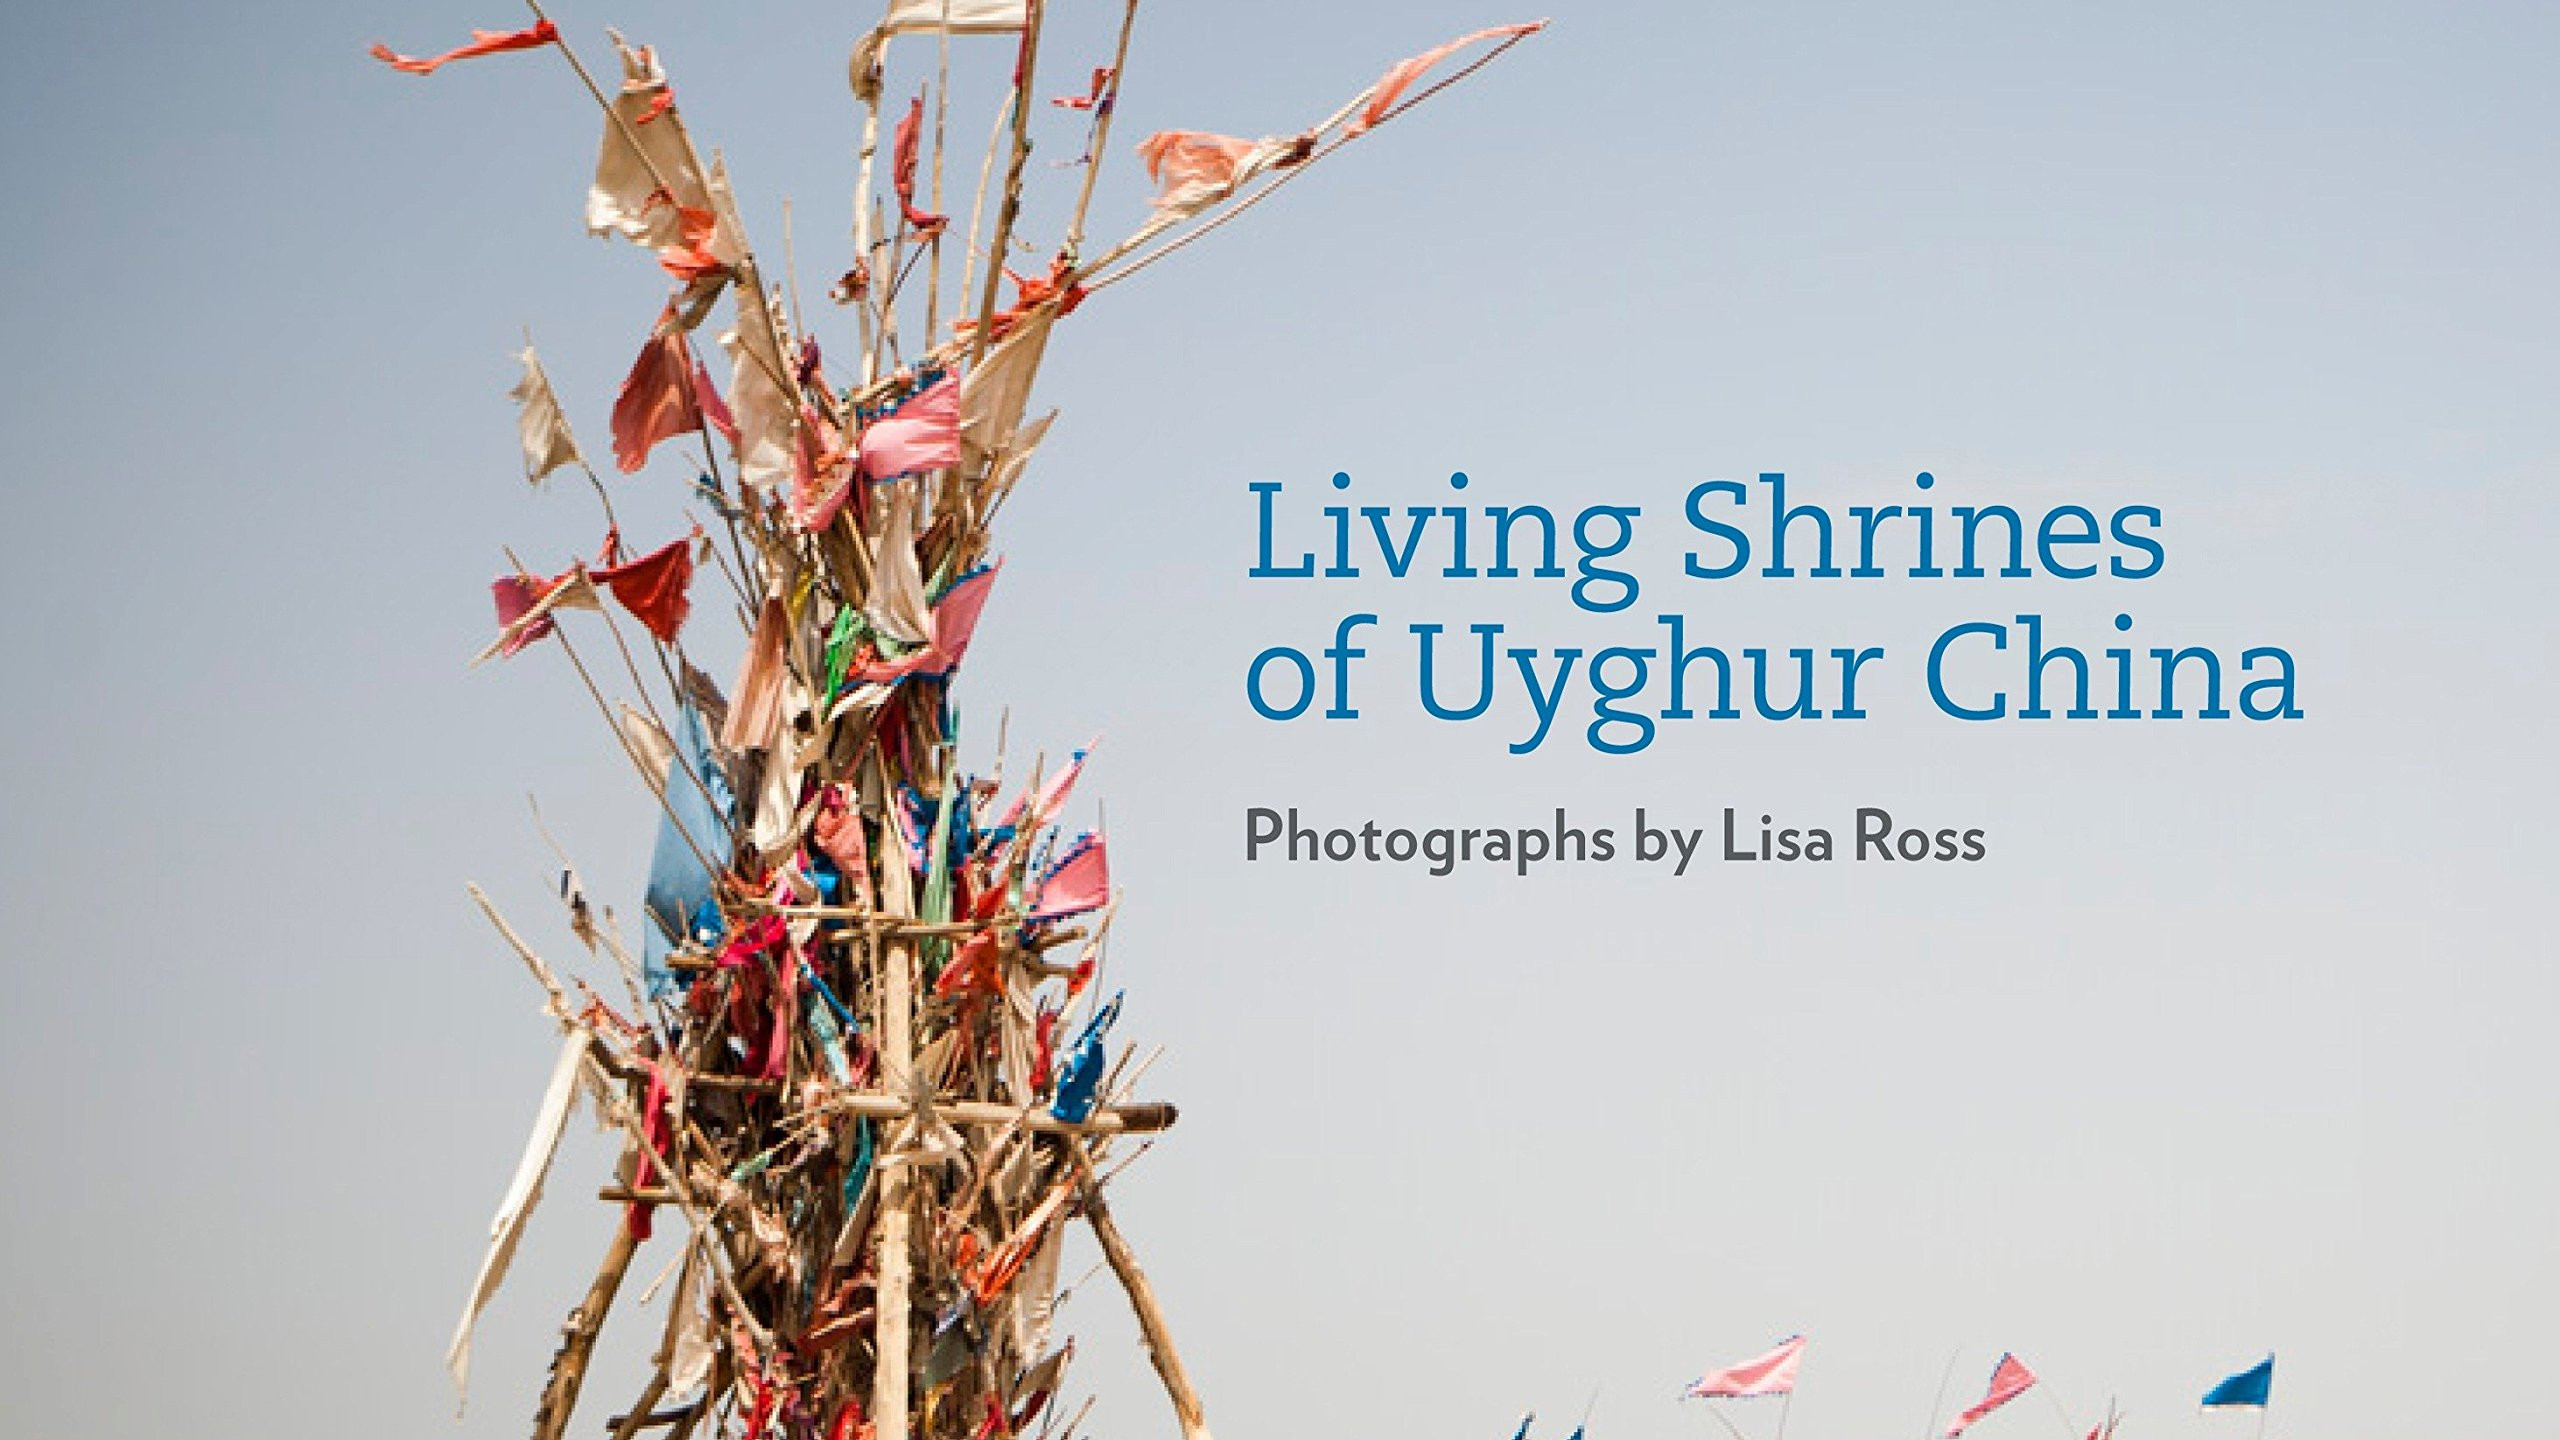 The book Living Shrines of Uyghur China – Photographs by Lisa Ross, published in 2013 by the Monacelli Press accompanies the exhibition with essays by Beth Citron, Rahila Dawut and Alexandre Papas.